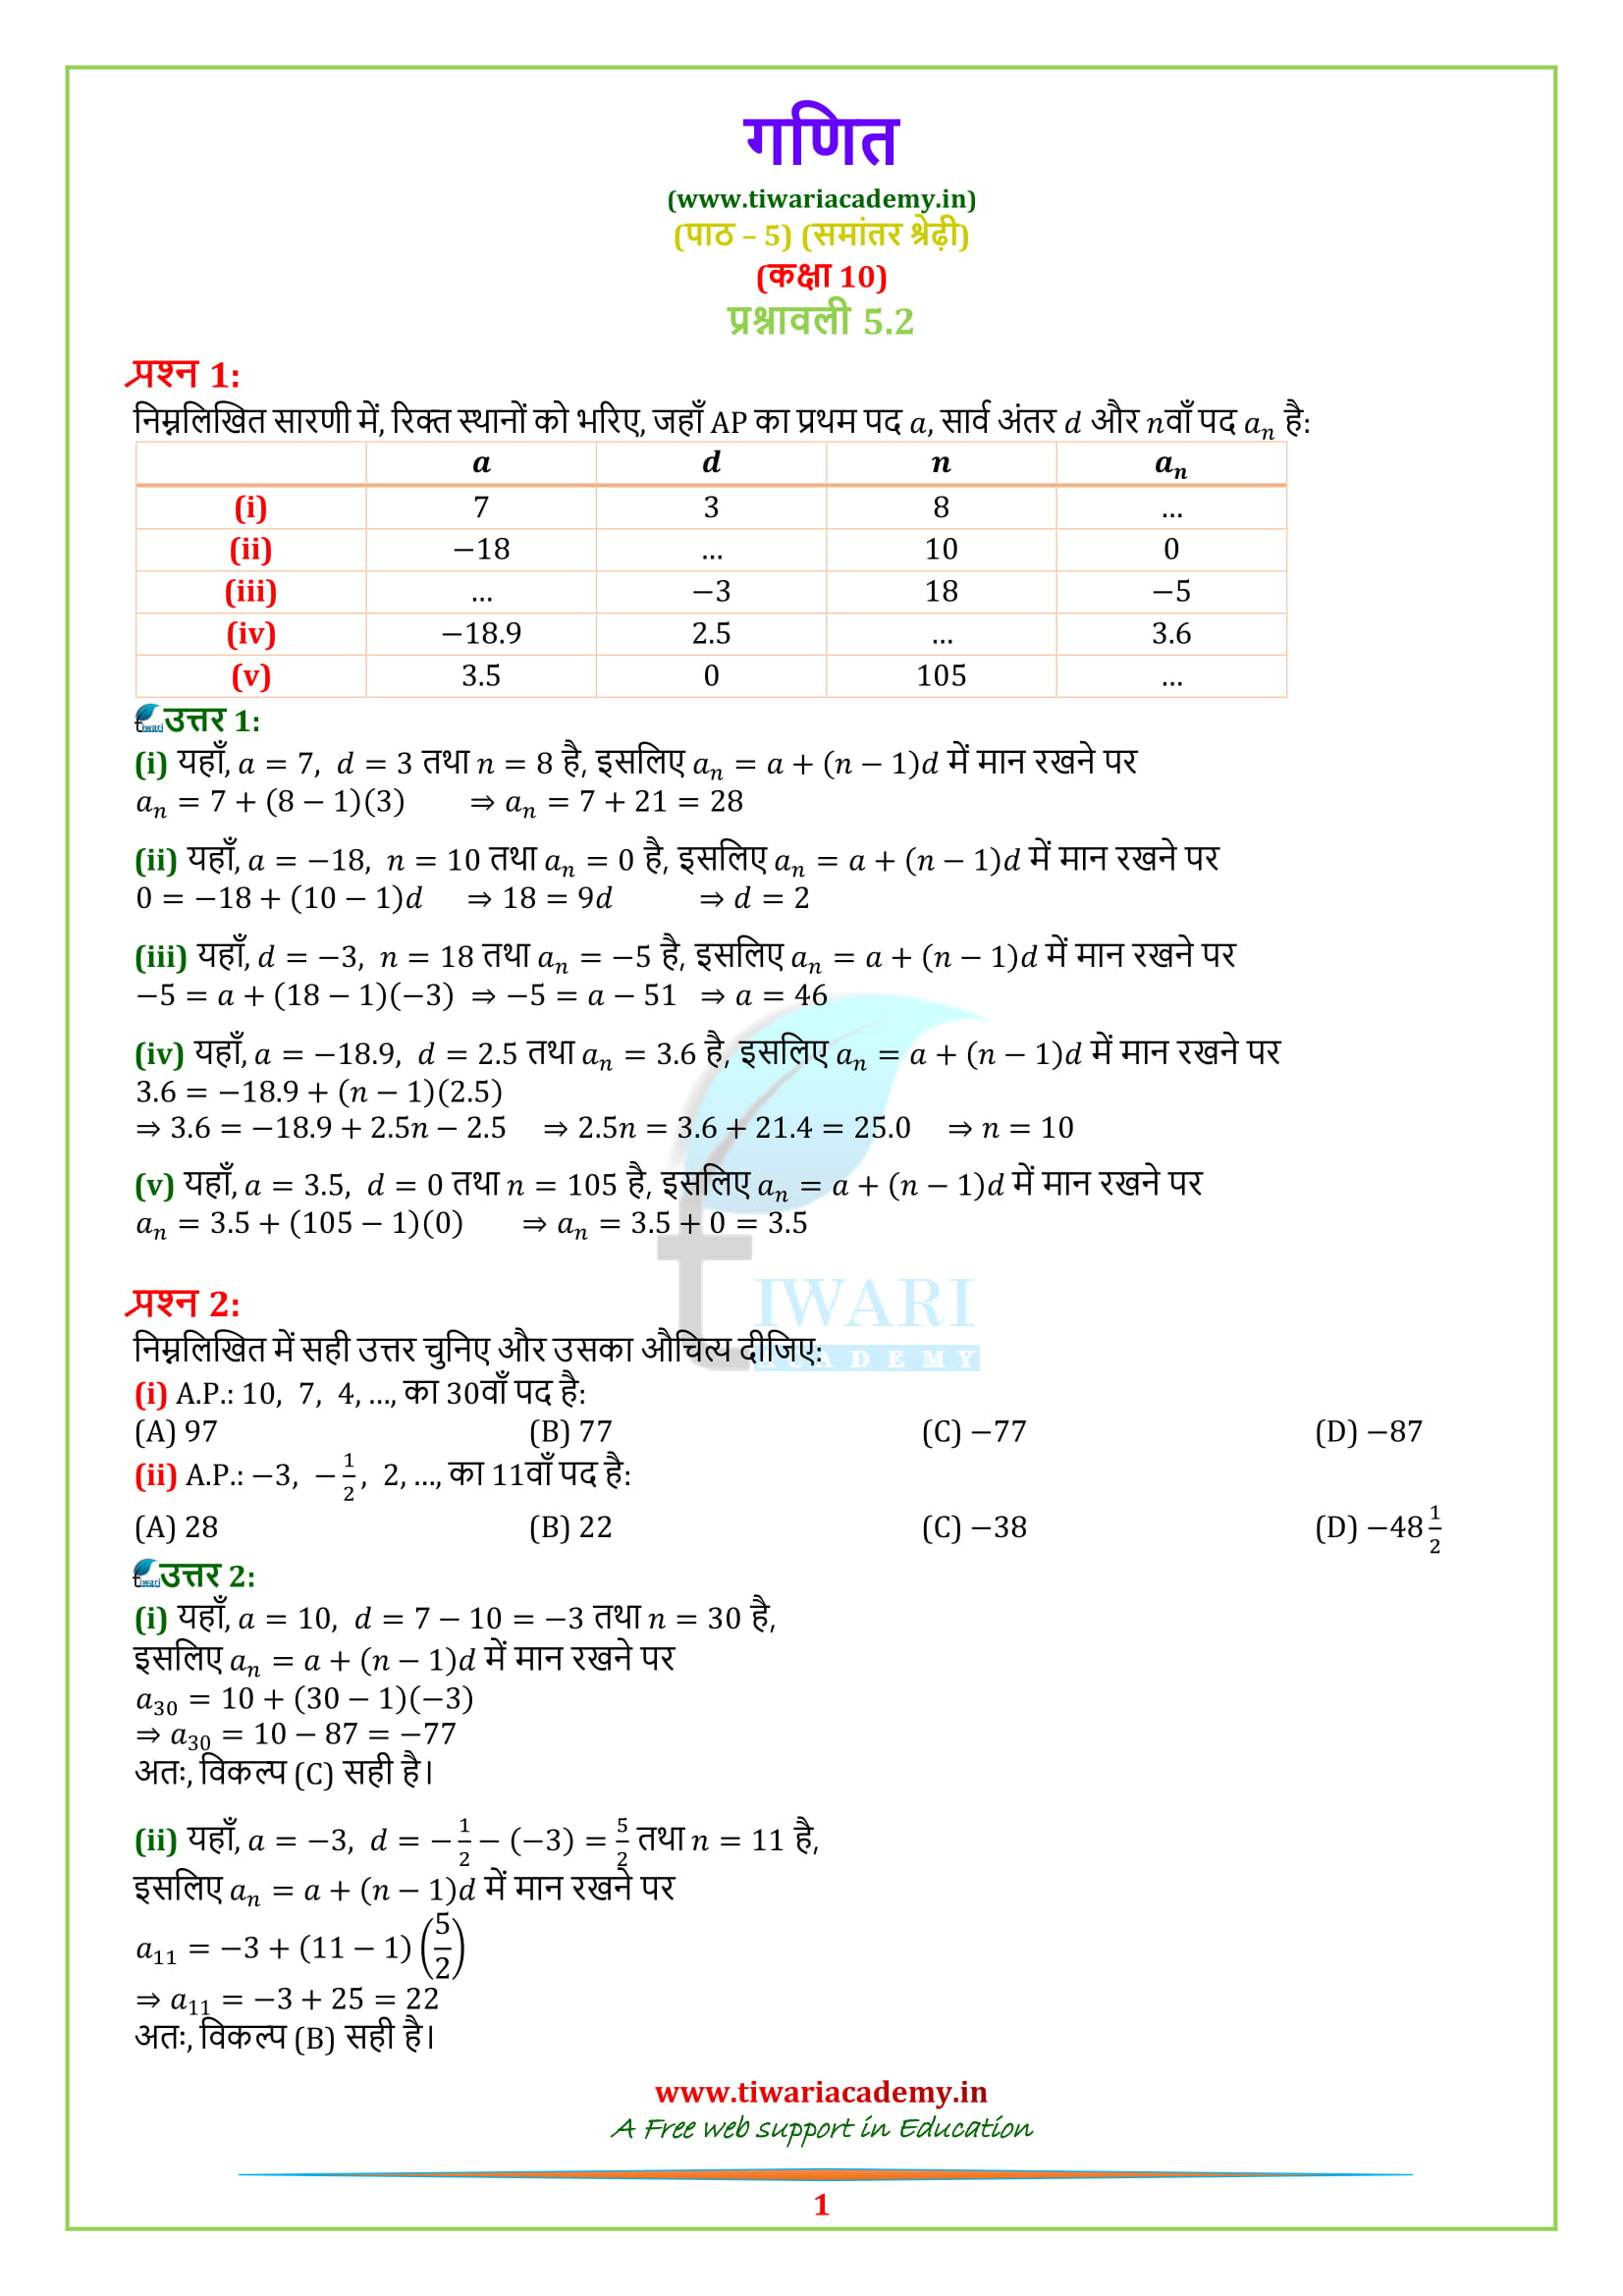 NCERT Solutions for Class 10 Maths exercise 5.2